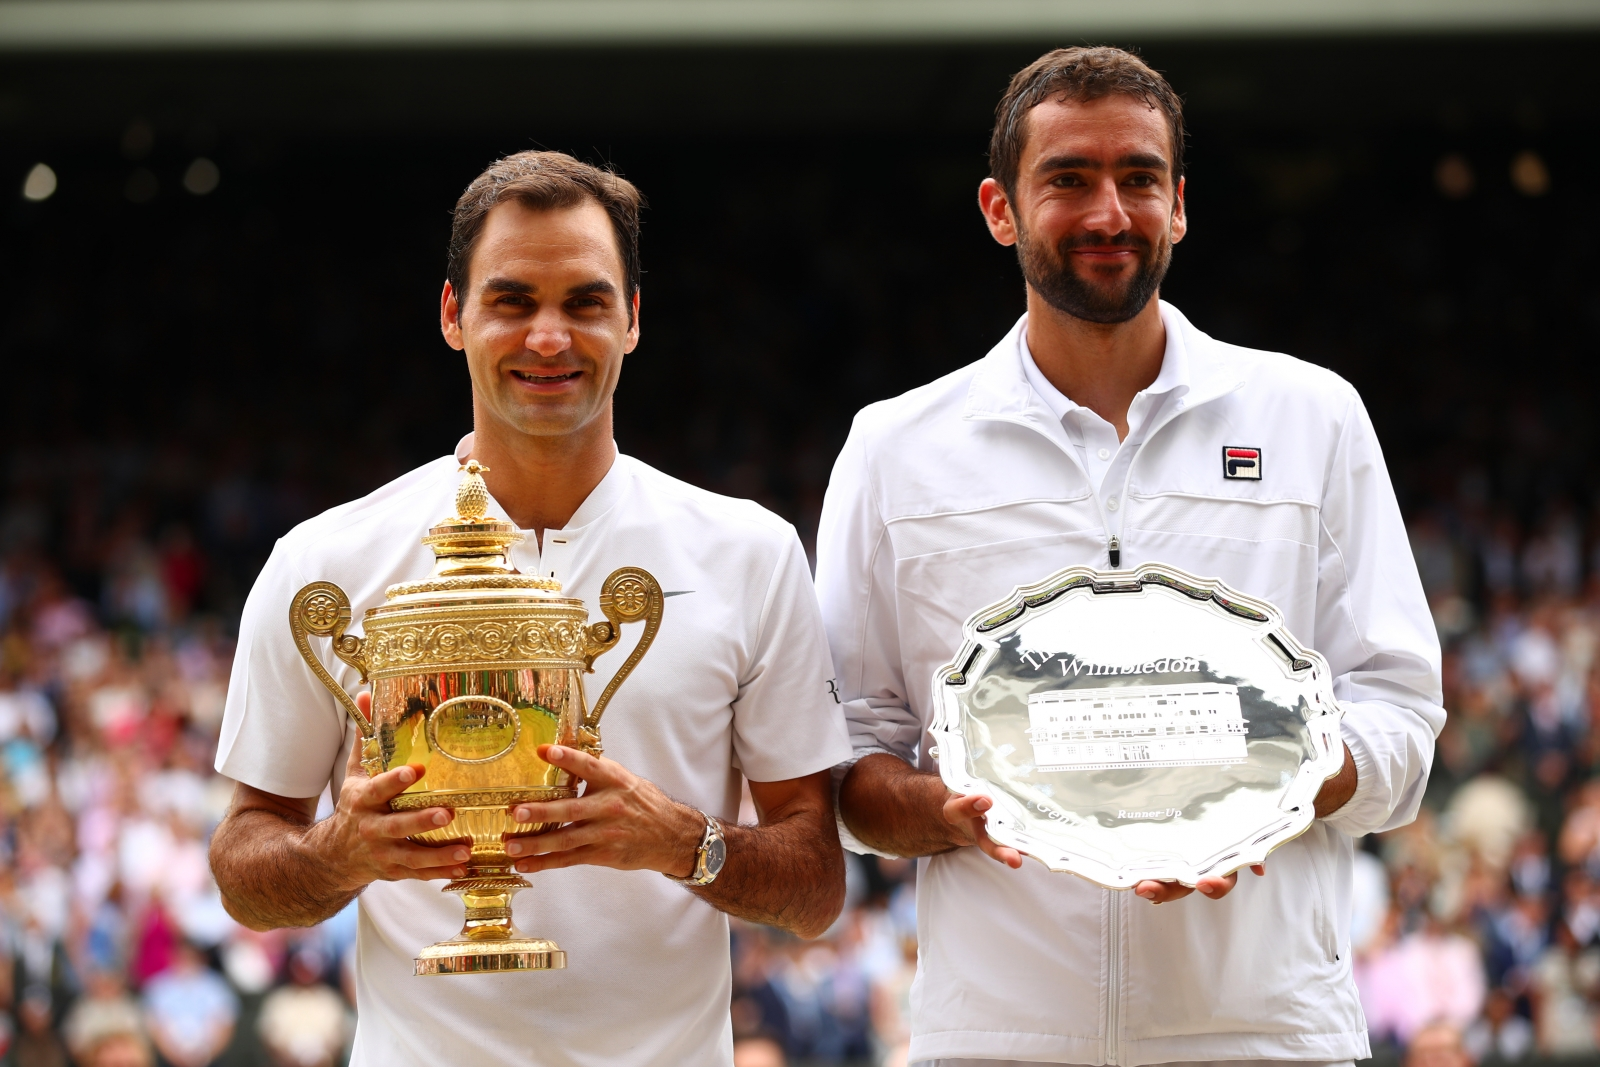 Roger Federer and Marin Cilic